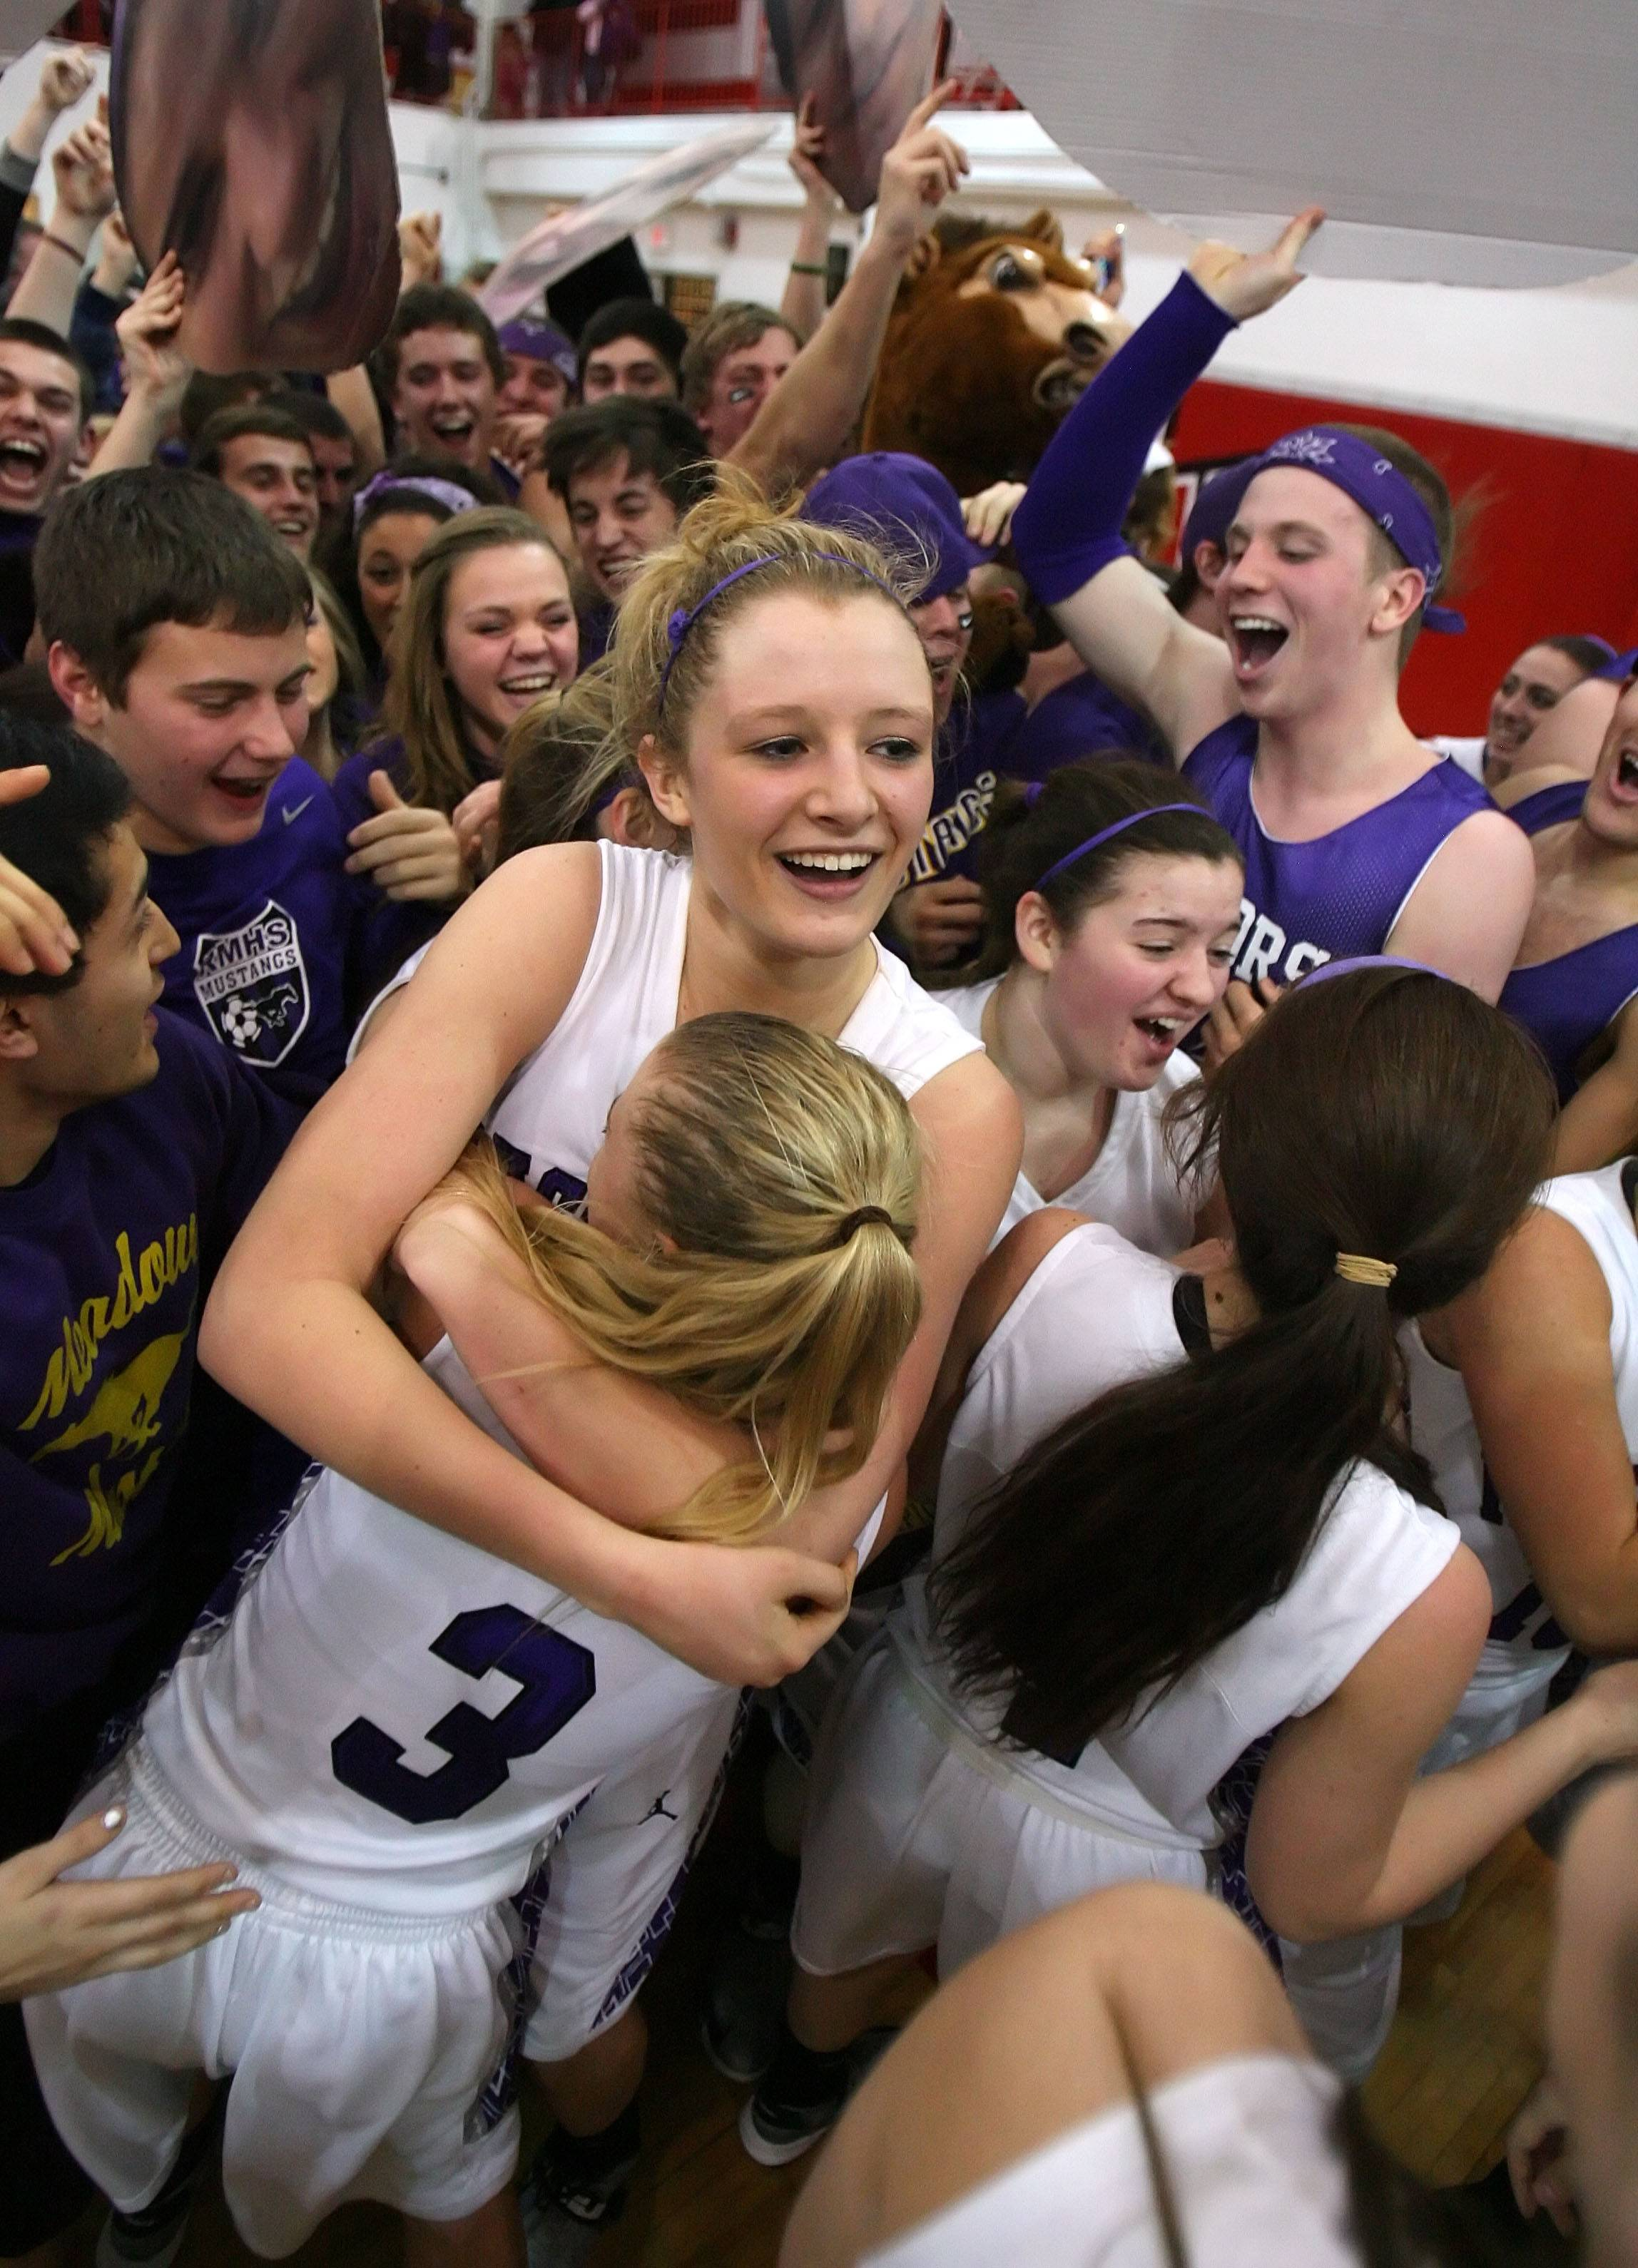 Rolling Meadows' Jenny Vliet and Jackie Kemph celebrate as the fans rush the floor after the Mustangs topped Evanston in the Class 4A Niles West supersectional in February, 2013. The two are still teammates, now for St. Louis University, and will compete this weekend at Wintrust Arena.